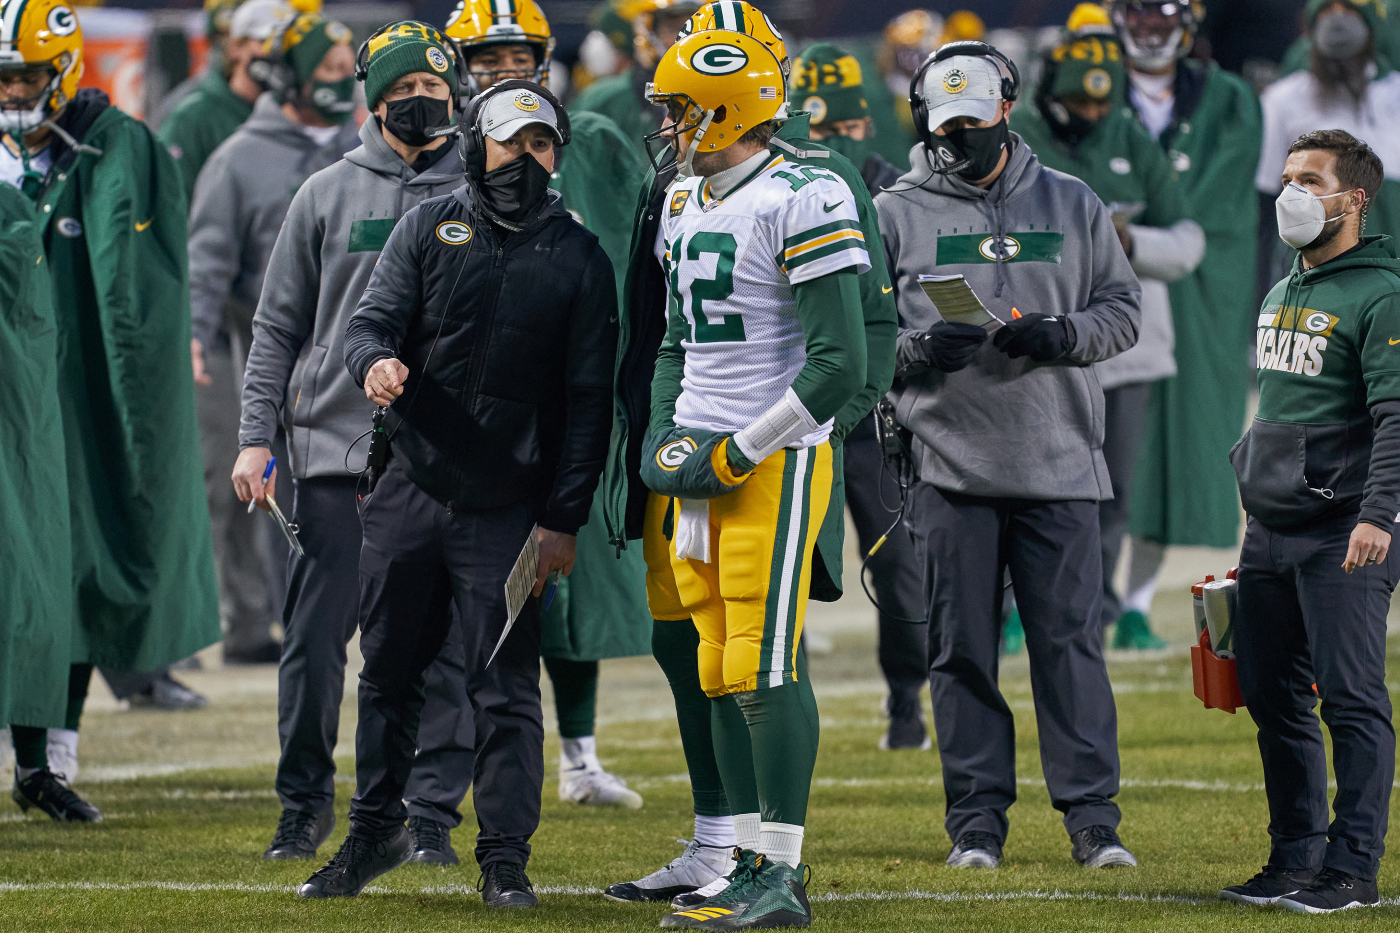 The Green Bay Packers rallied around each other Sunday.